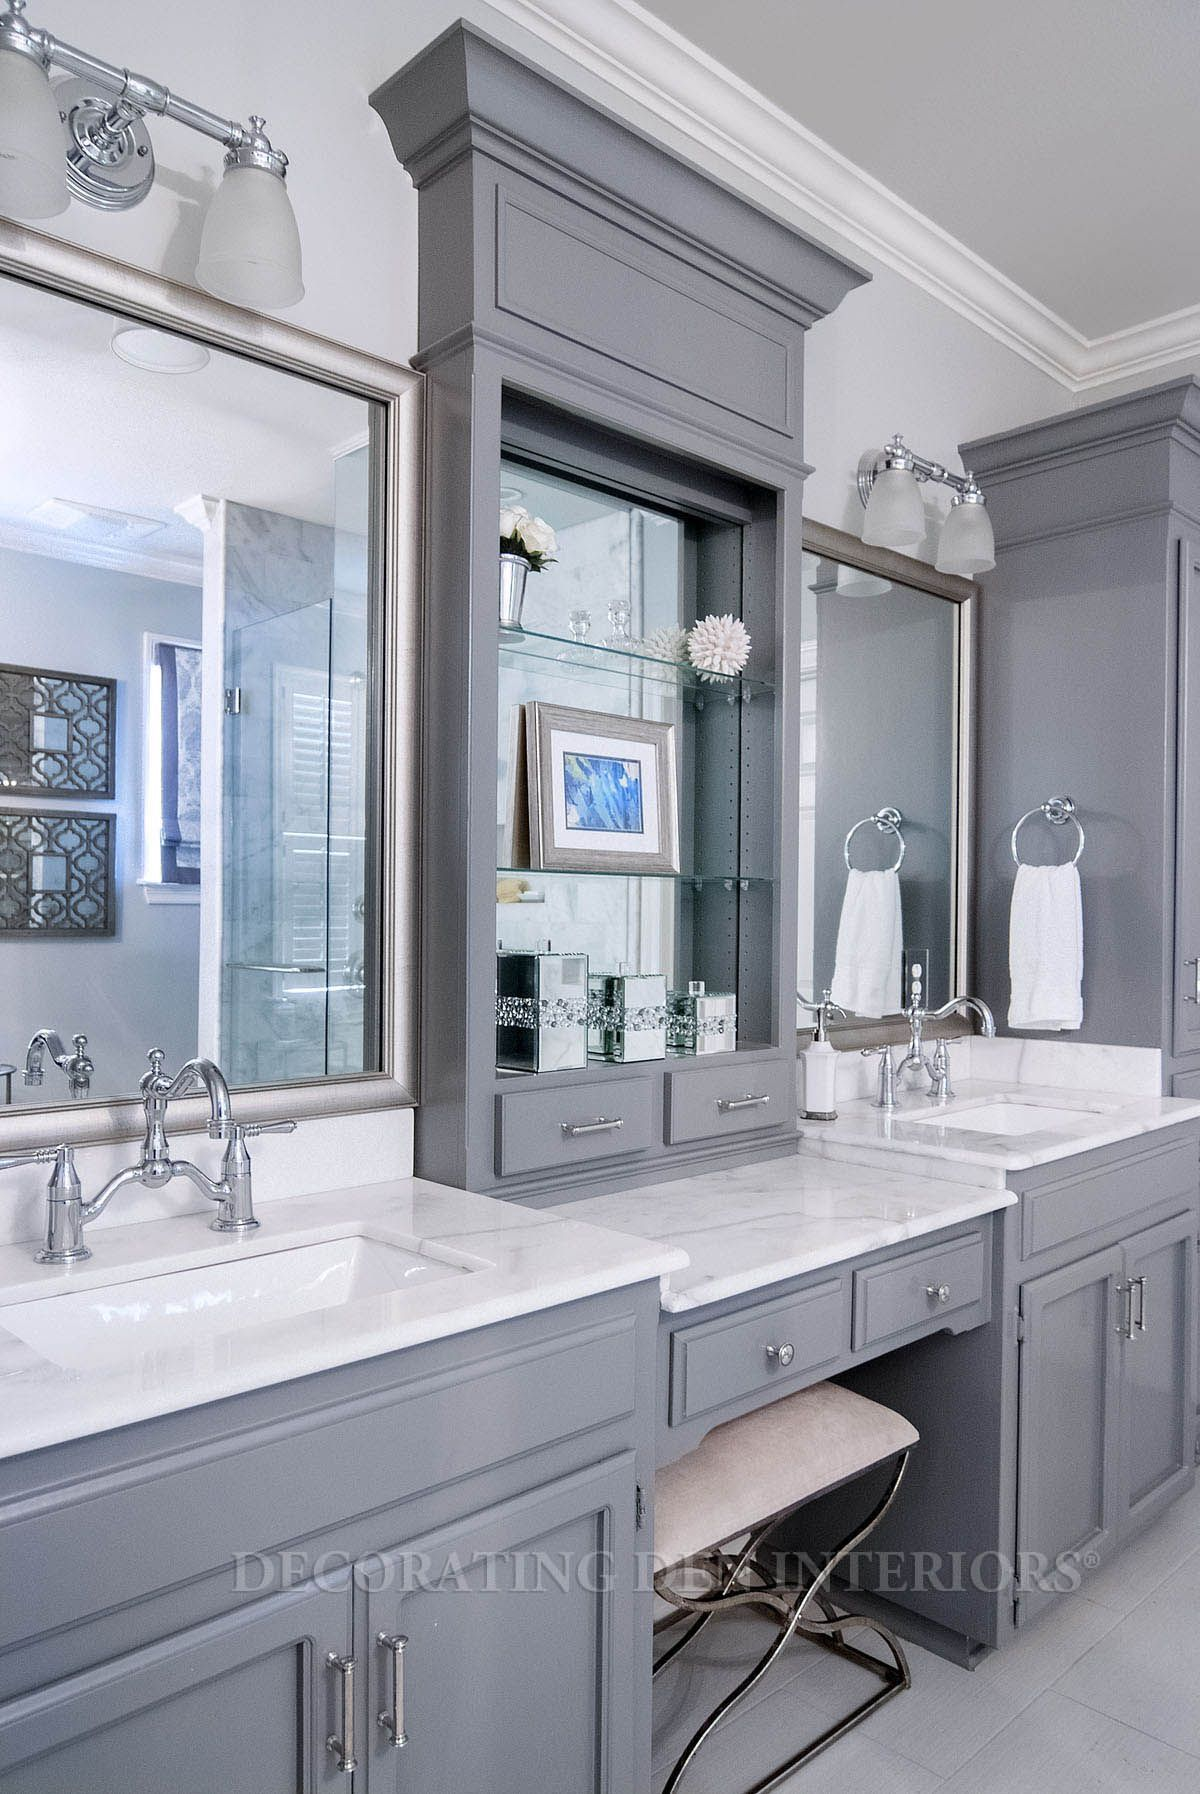 Is your home in need of a bathroom remodel? Give your